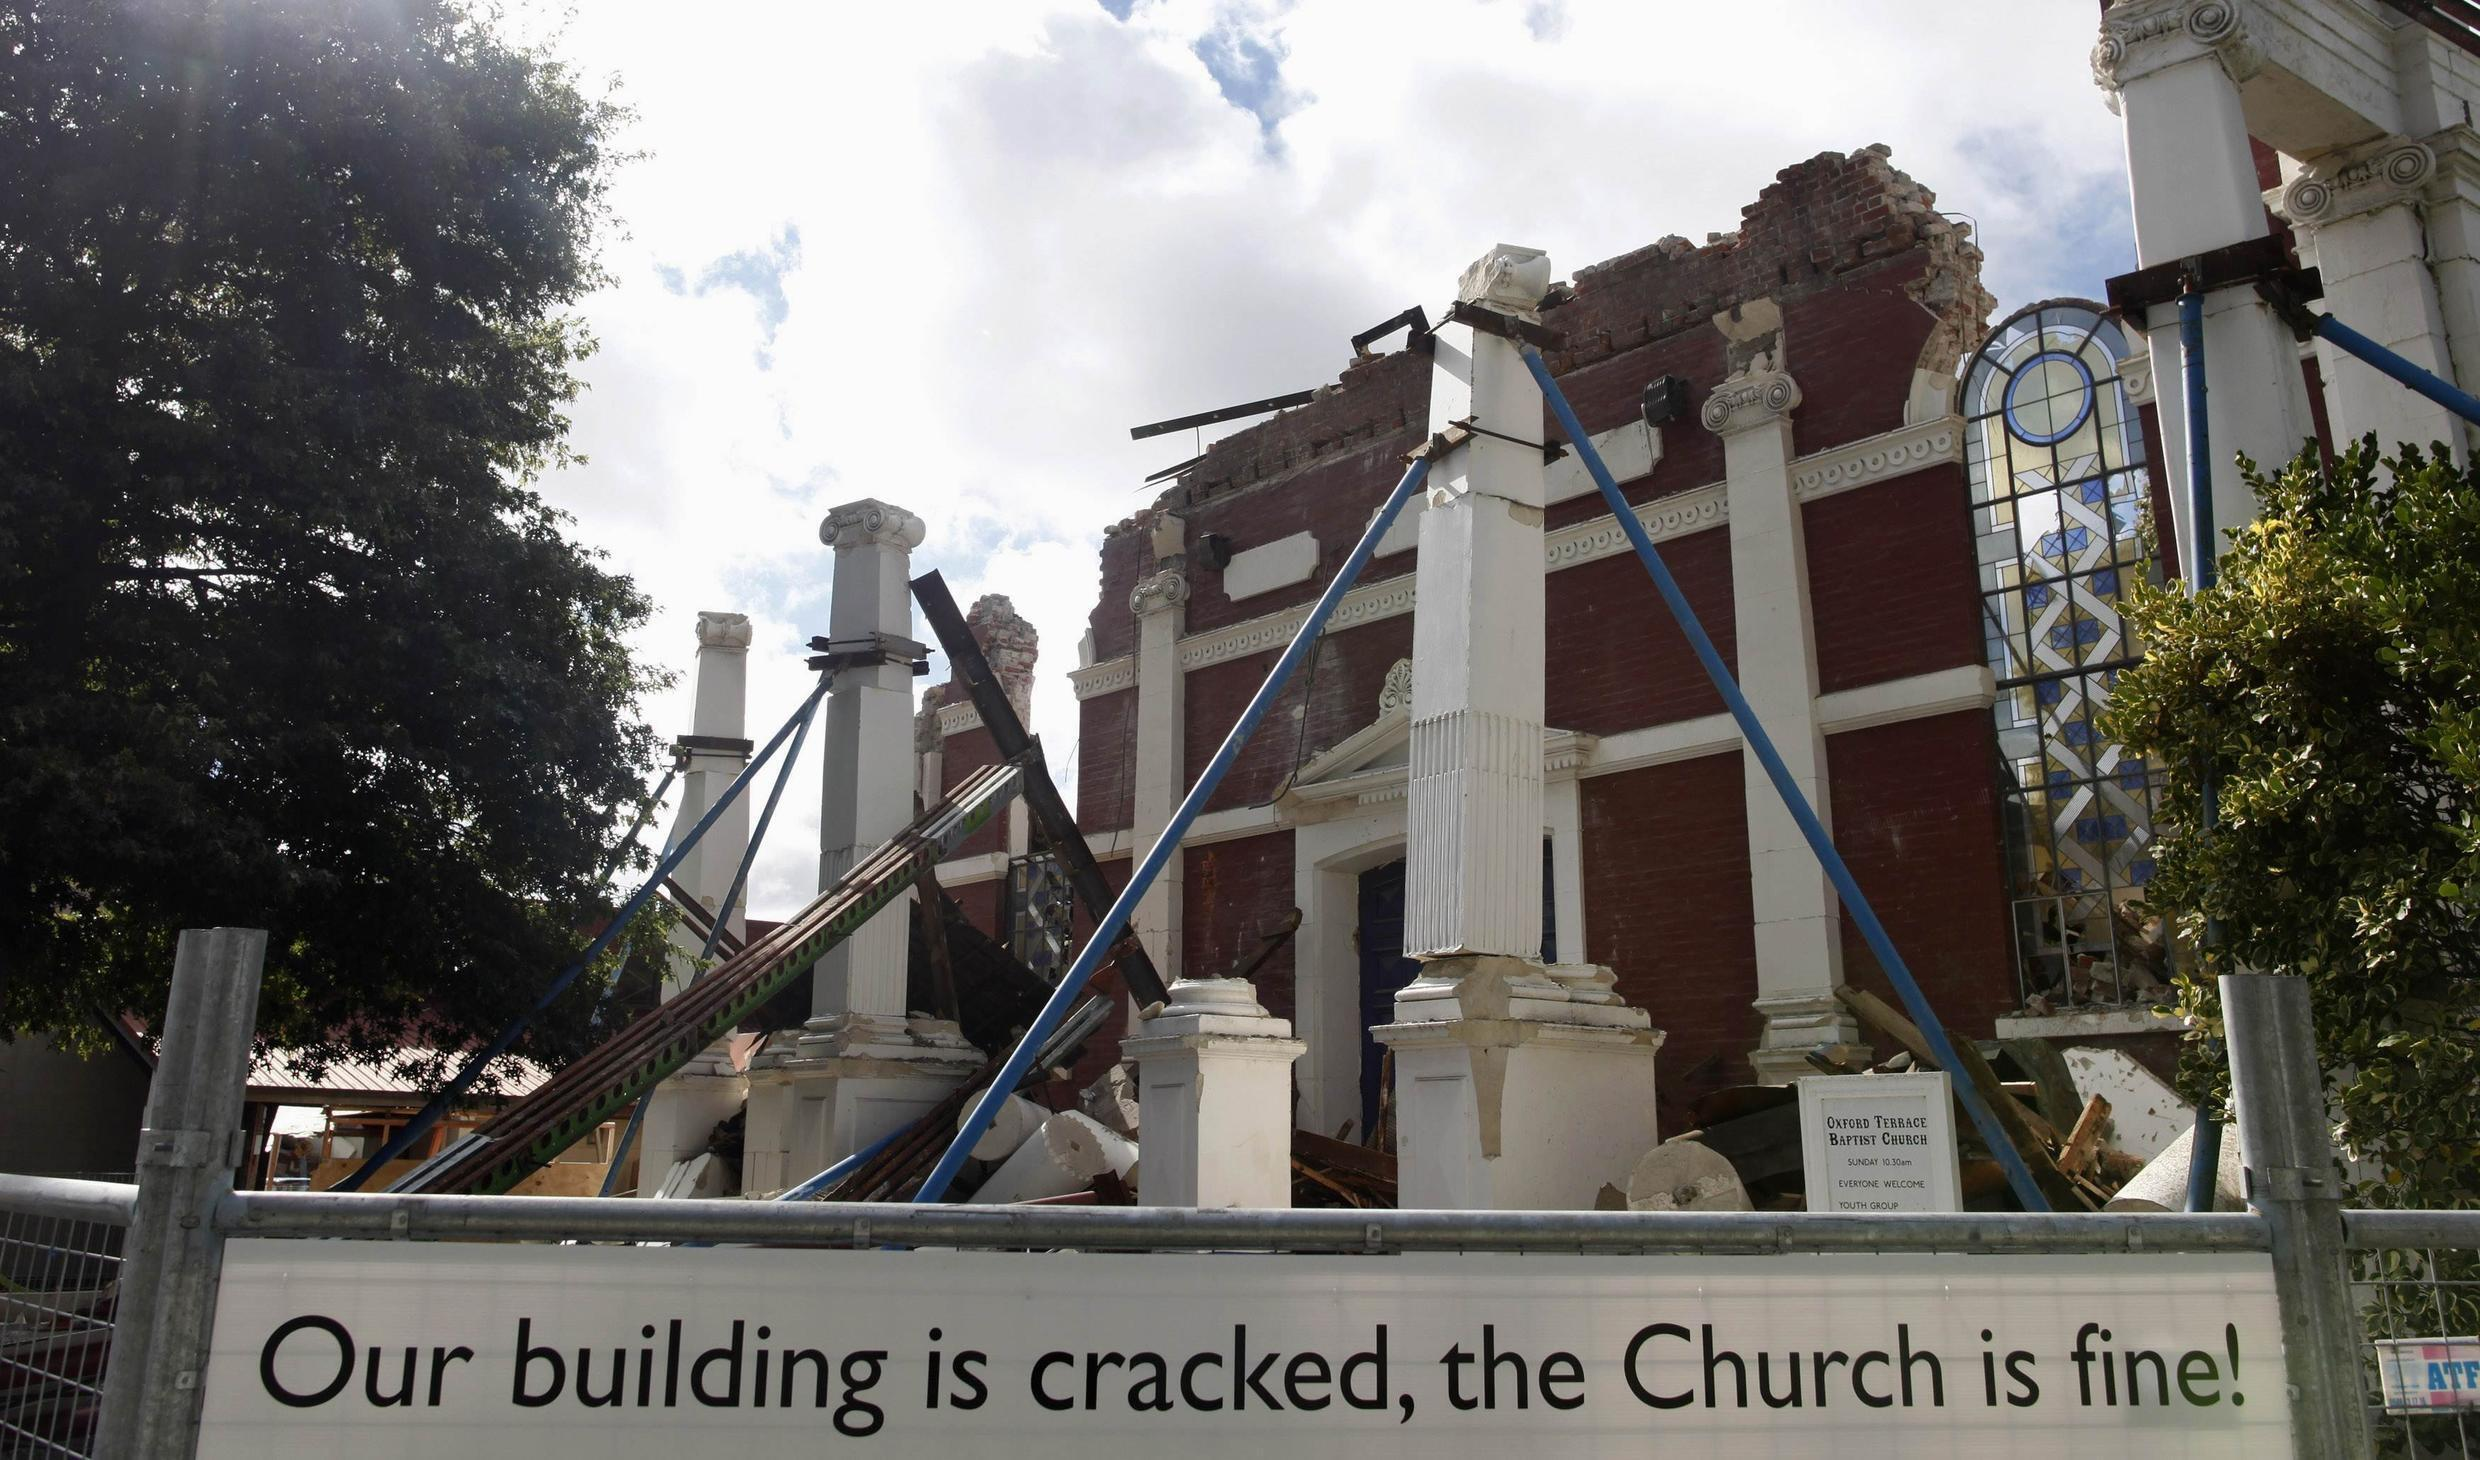 A sign referring to a previous earthquake stands in front of the destroyed Oxford Terrace Baptist church in Christchurch